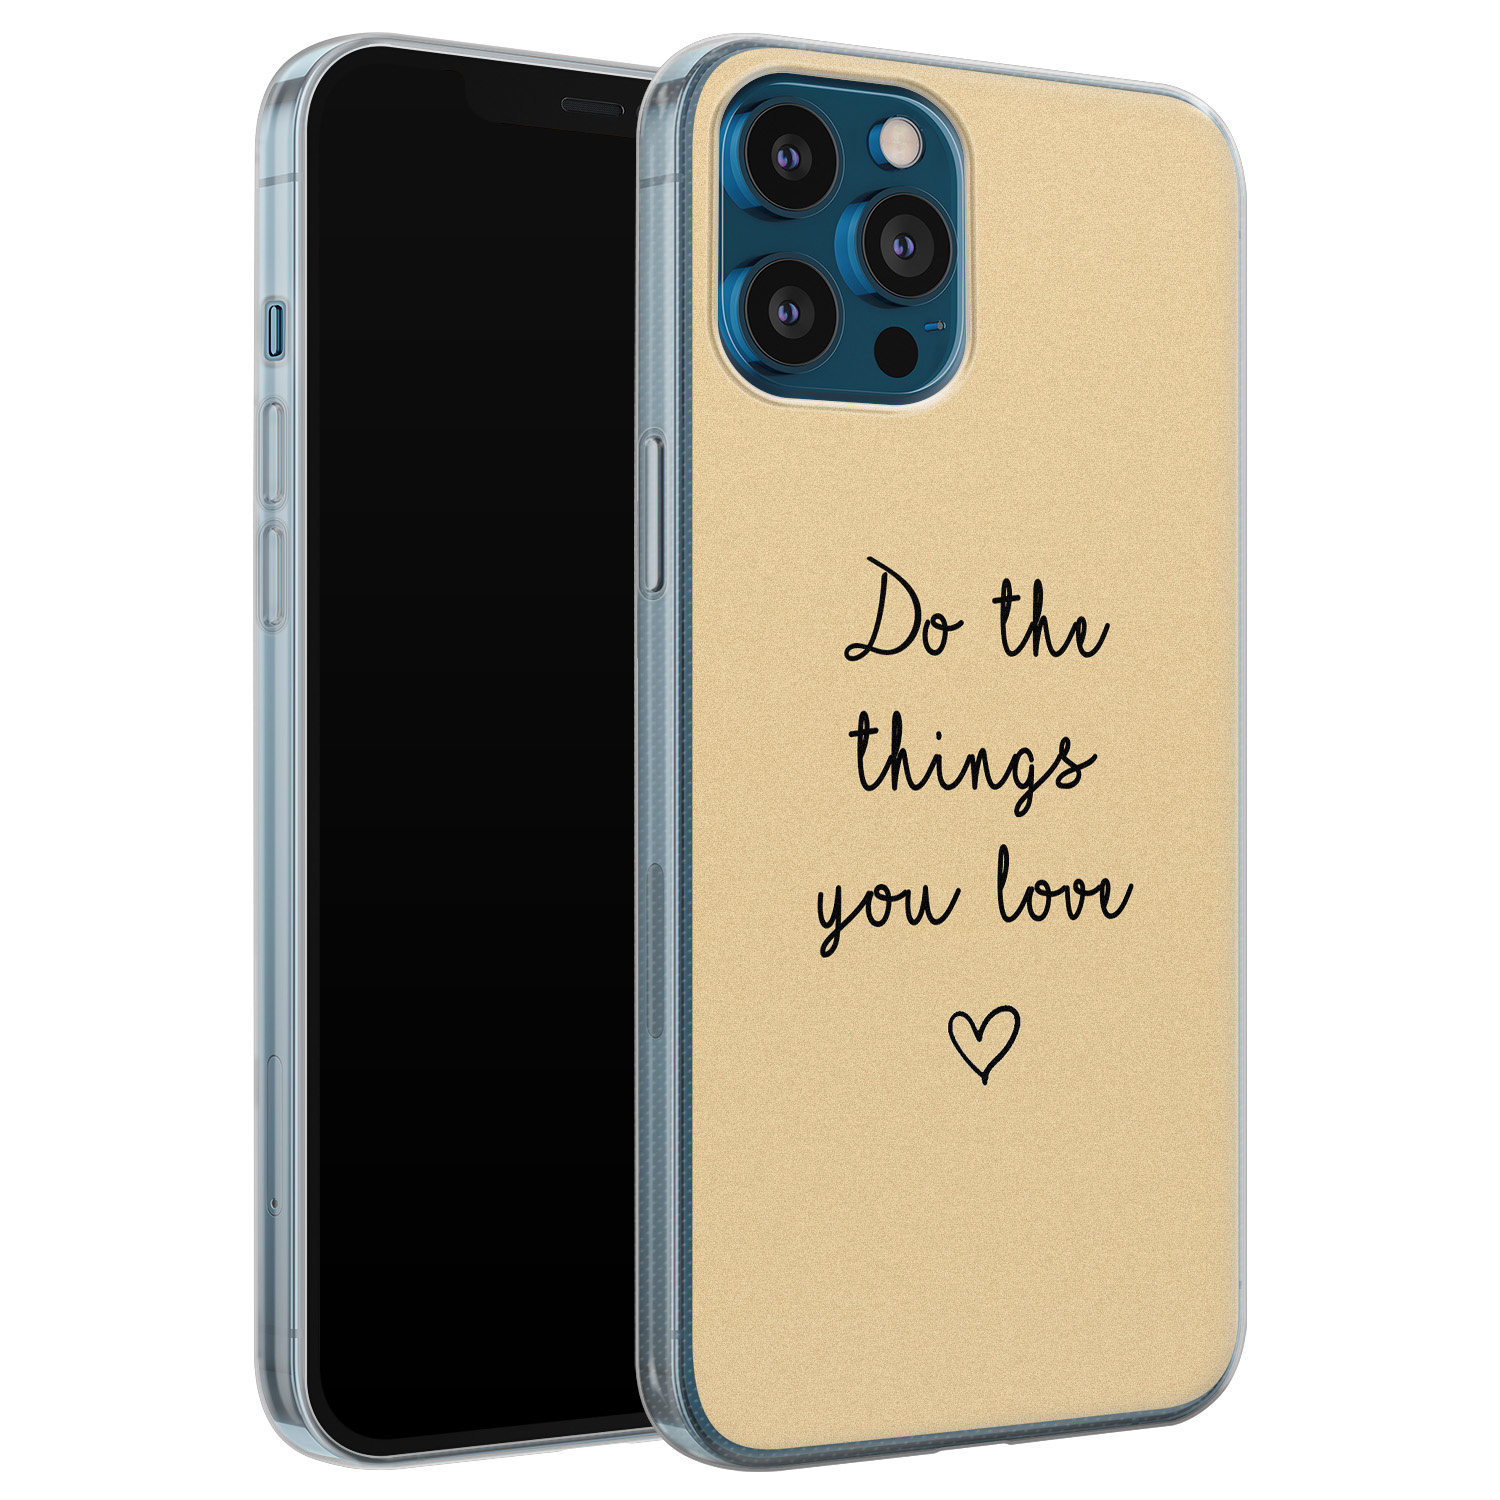 iPhone 12 Pro siliconen hoesje - Do the things you love